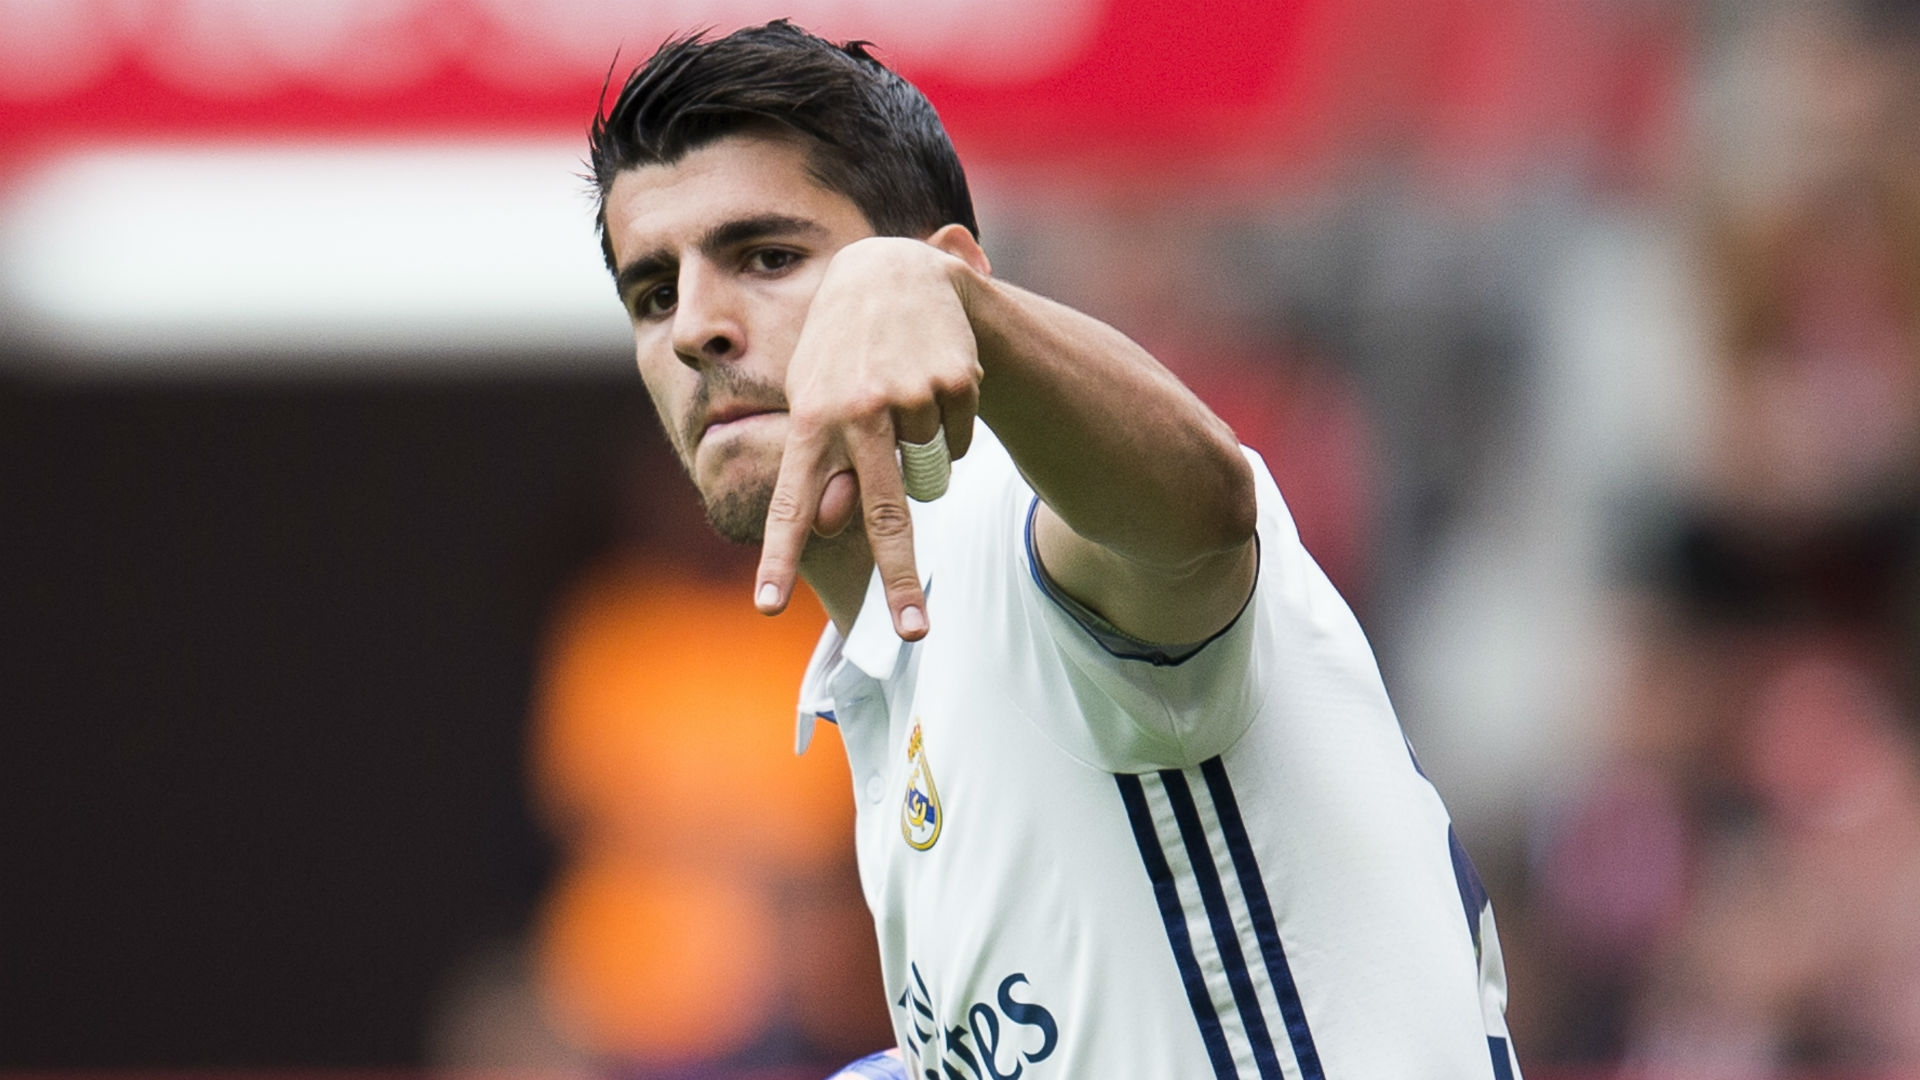 Subsequently, the team purchased another striker, Real Madrid's Alvaro Morata.